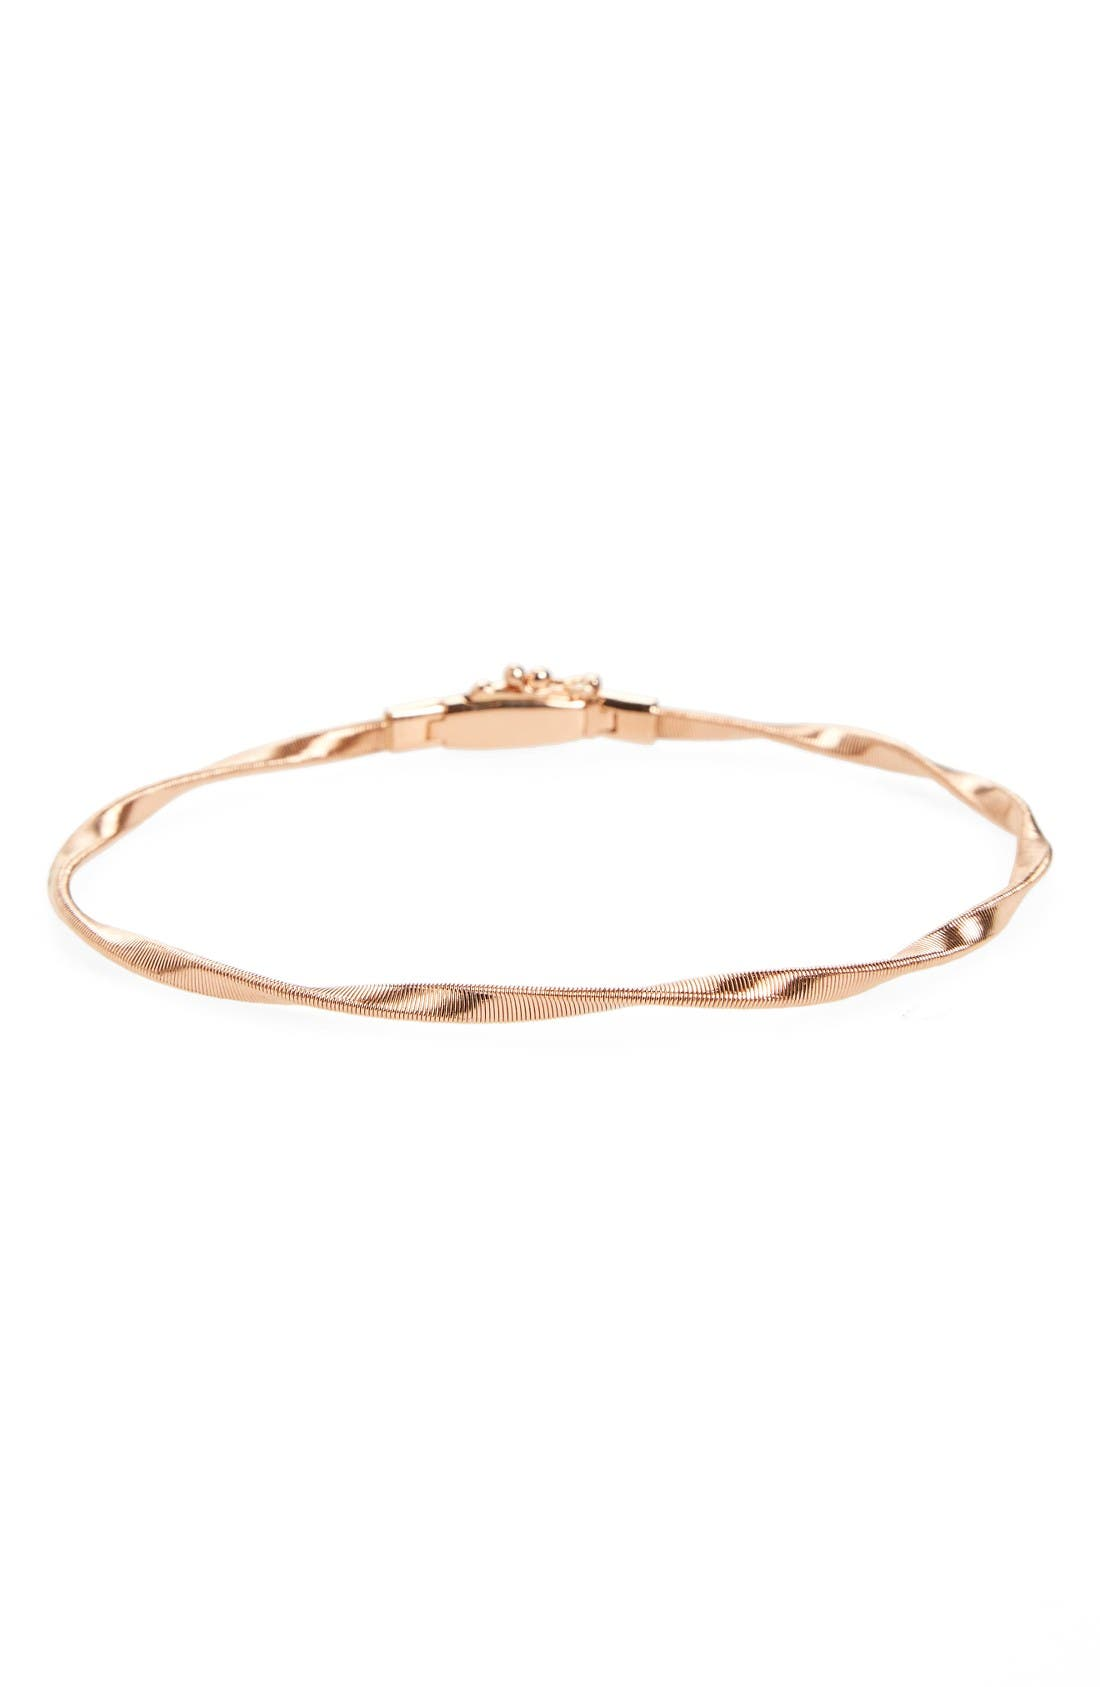 'Marrakech' Single Strand Bracelet,                             Main thumbnail 1, color,                             Rose Gold